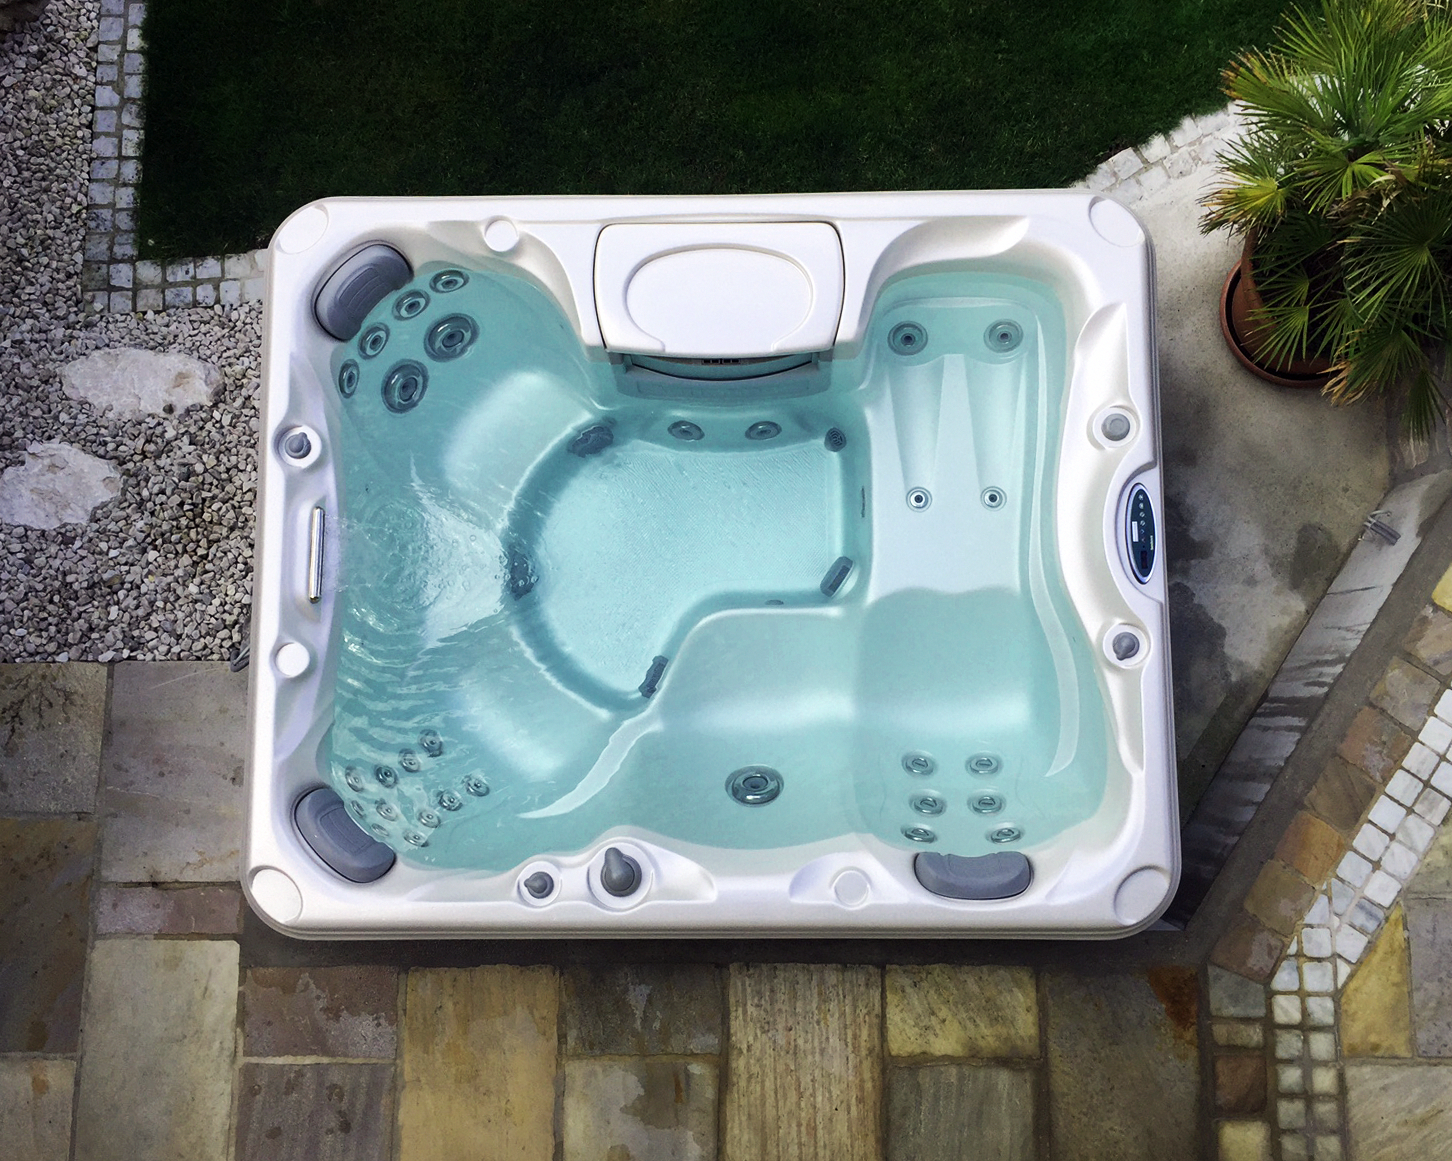 Advantages And Disadvantages Of Indoor Hot Tubs Vs Outdoor Hot Tubs Whirlpool Hot Tub Hot Tub Cover Tub Cover